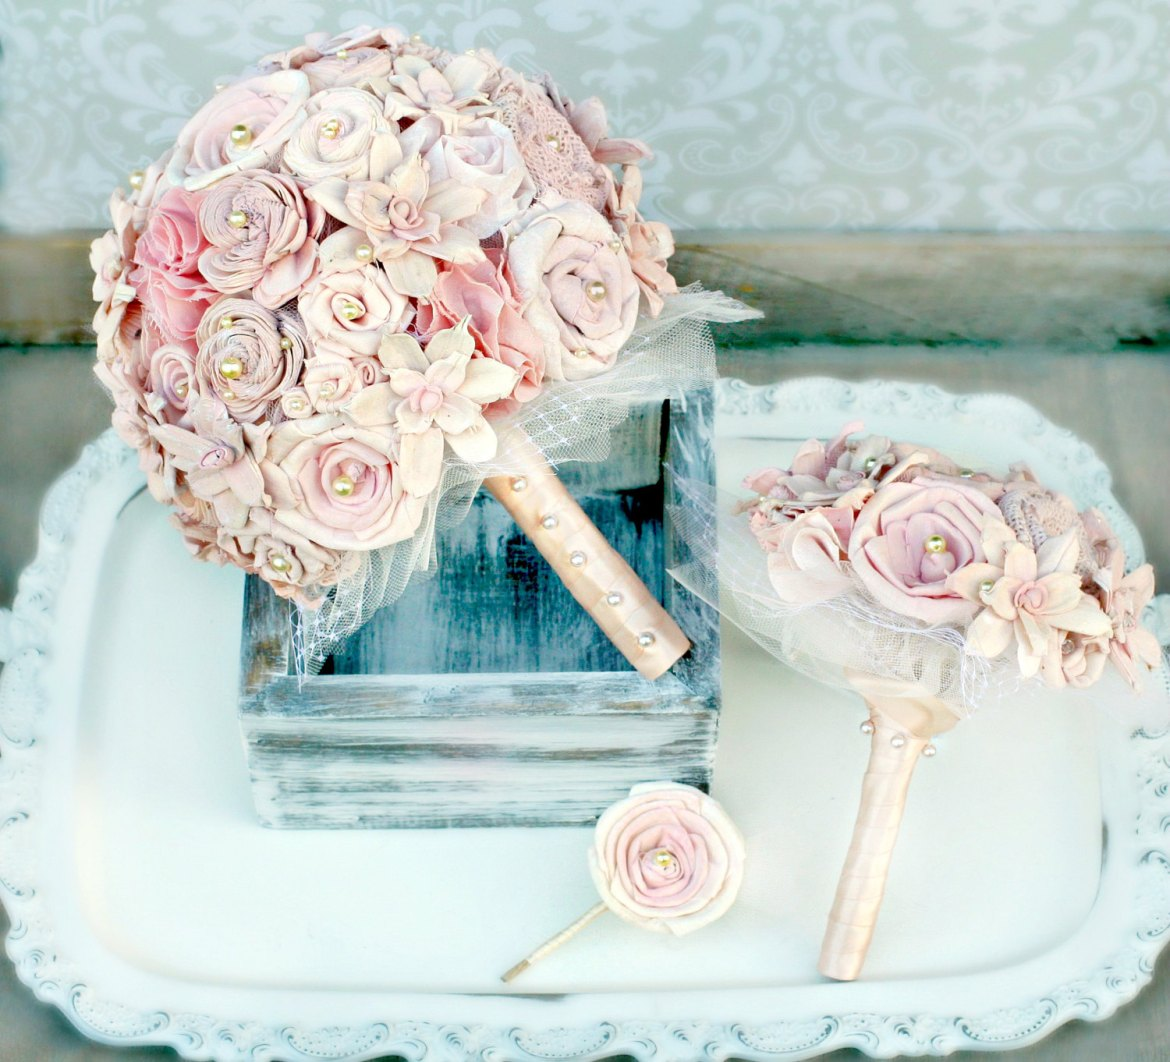 Alternative Bouquets To Carry Down The Aisle At Your Wedding